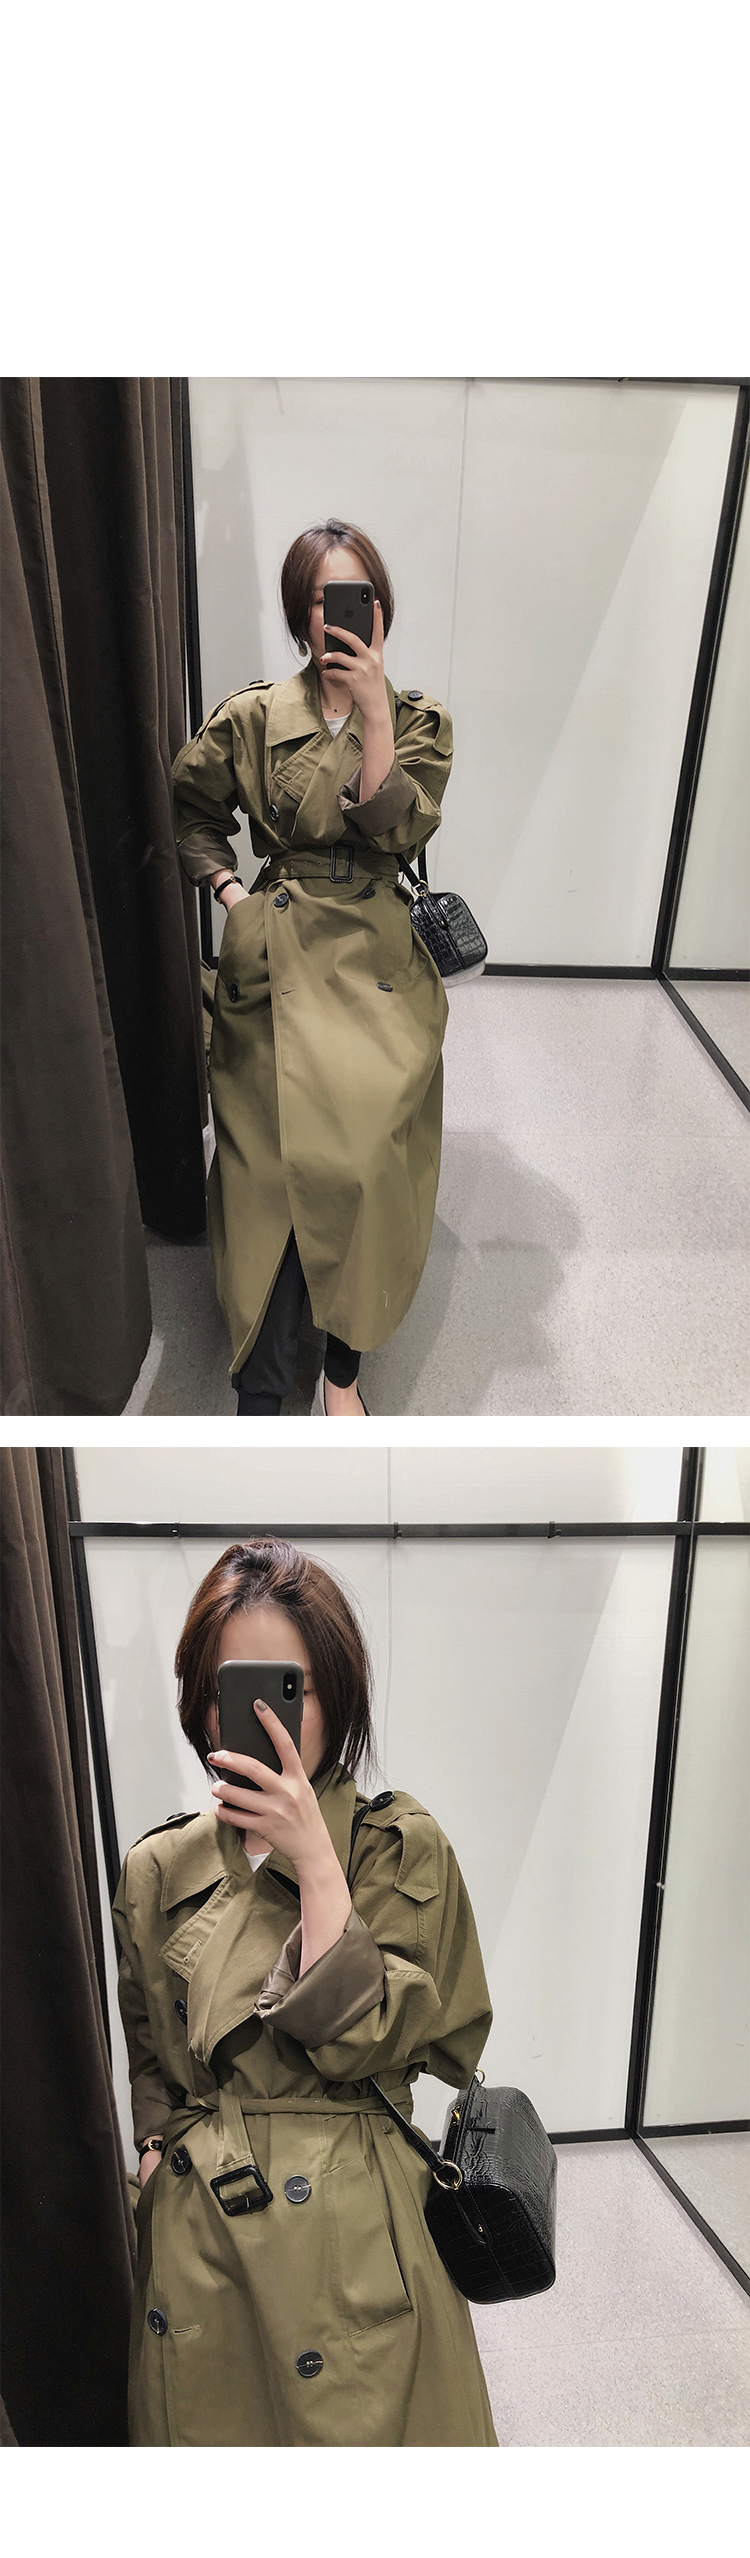 khaki Trench Coat Casual women's long Outerwear loose clothes for lady with belt spring autumn fashion high quality army green 5